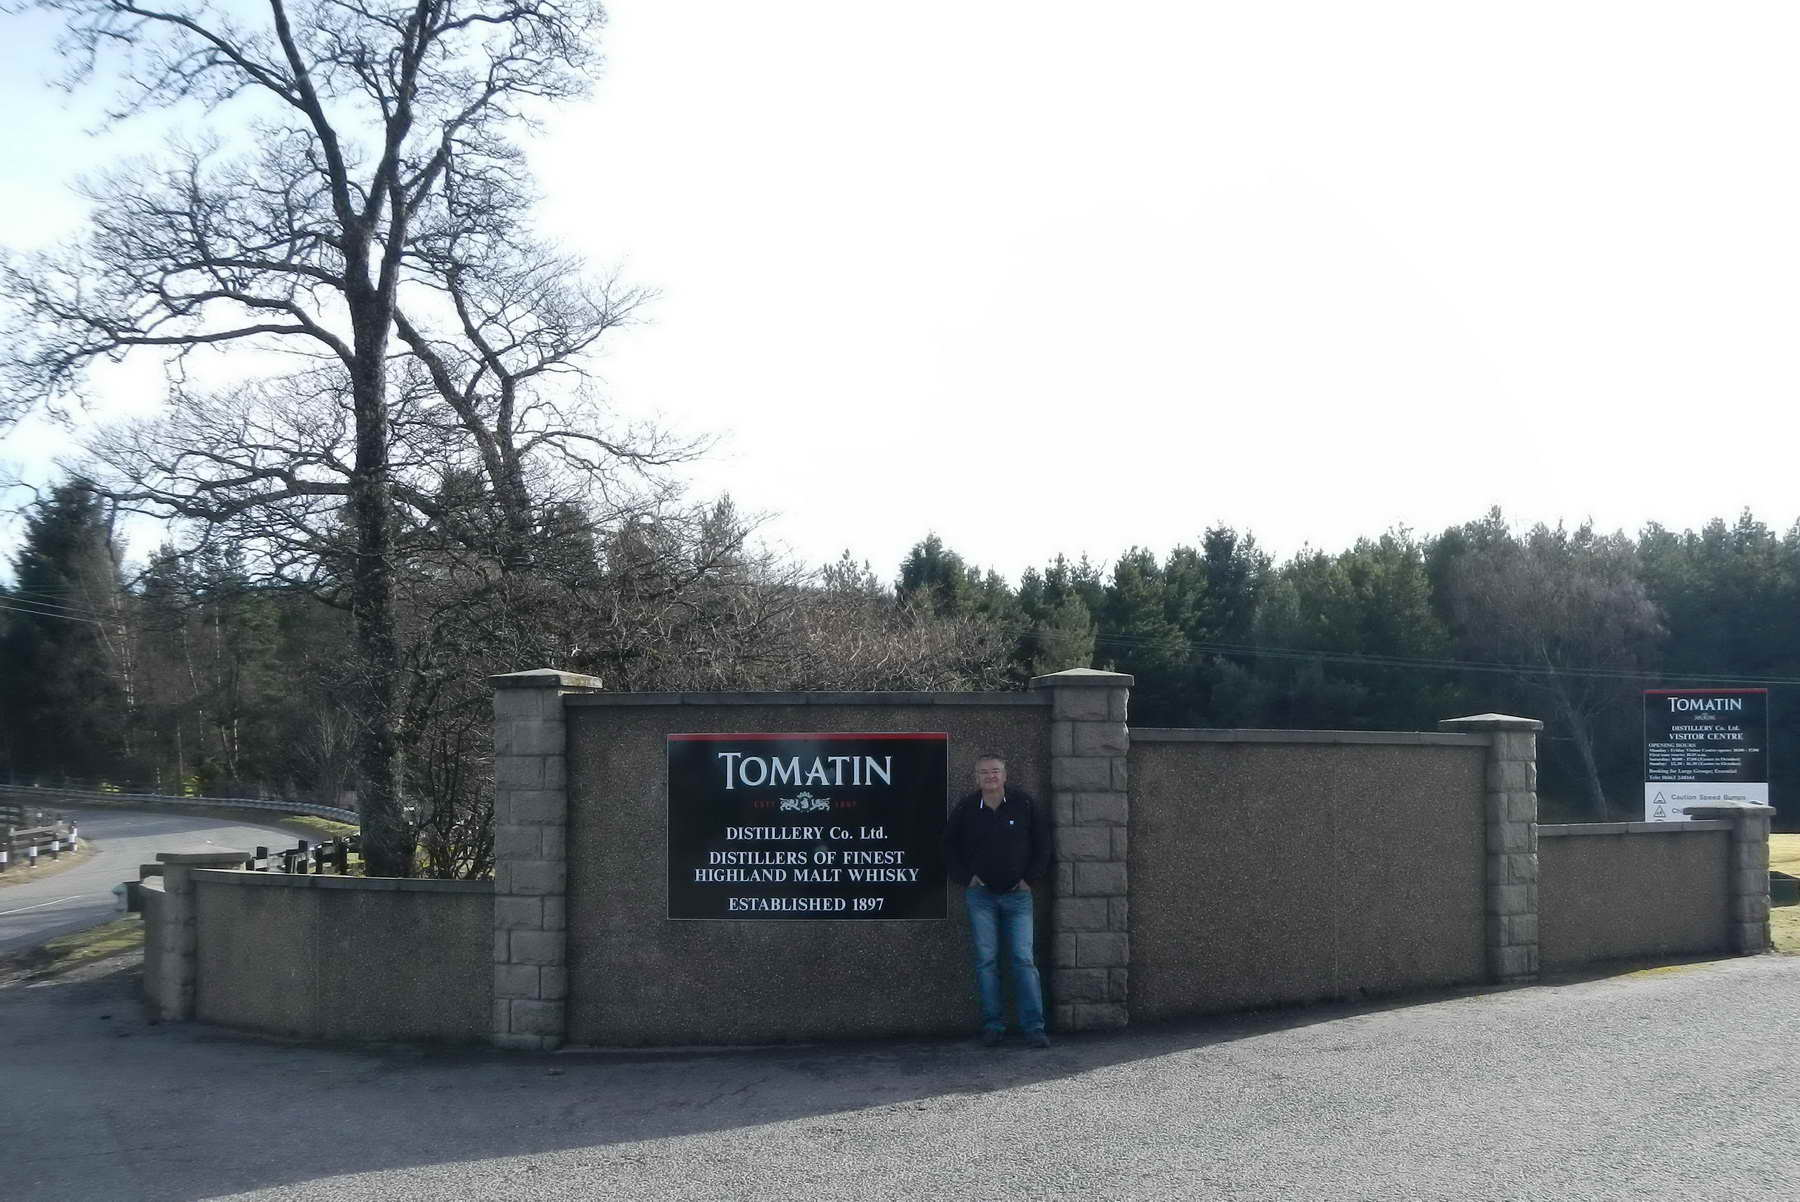 https://www.blog4ever-fichiers.com/2014/01/761430/Tomatin-01.jpg